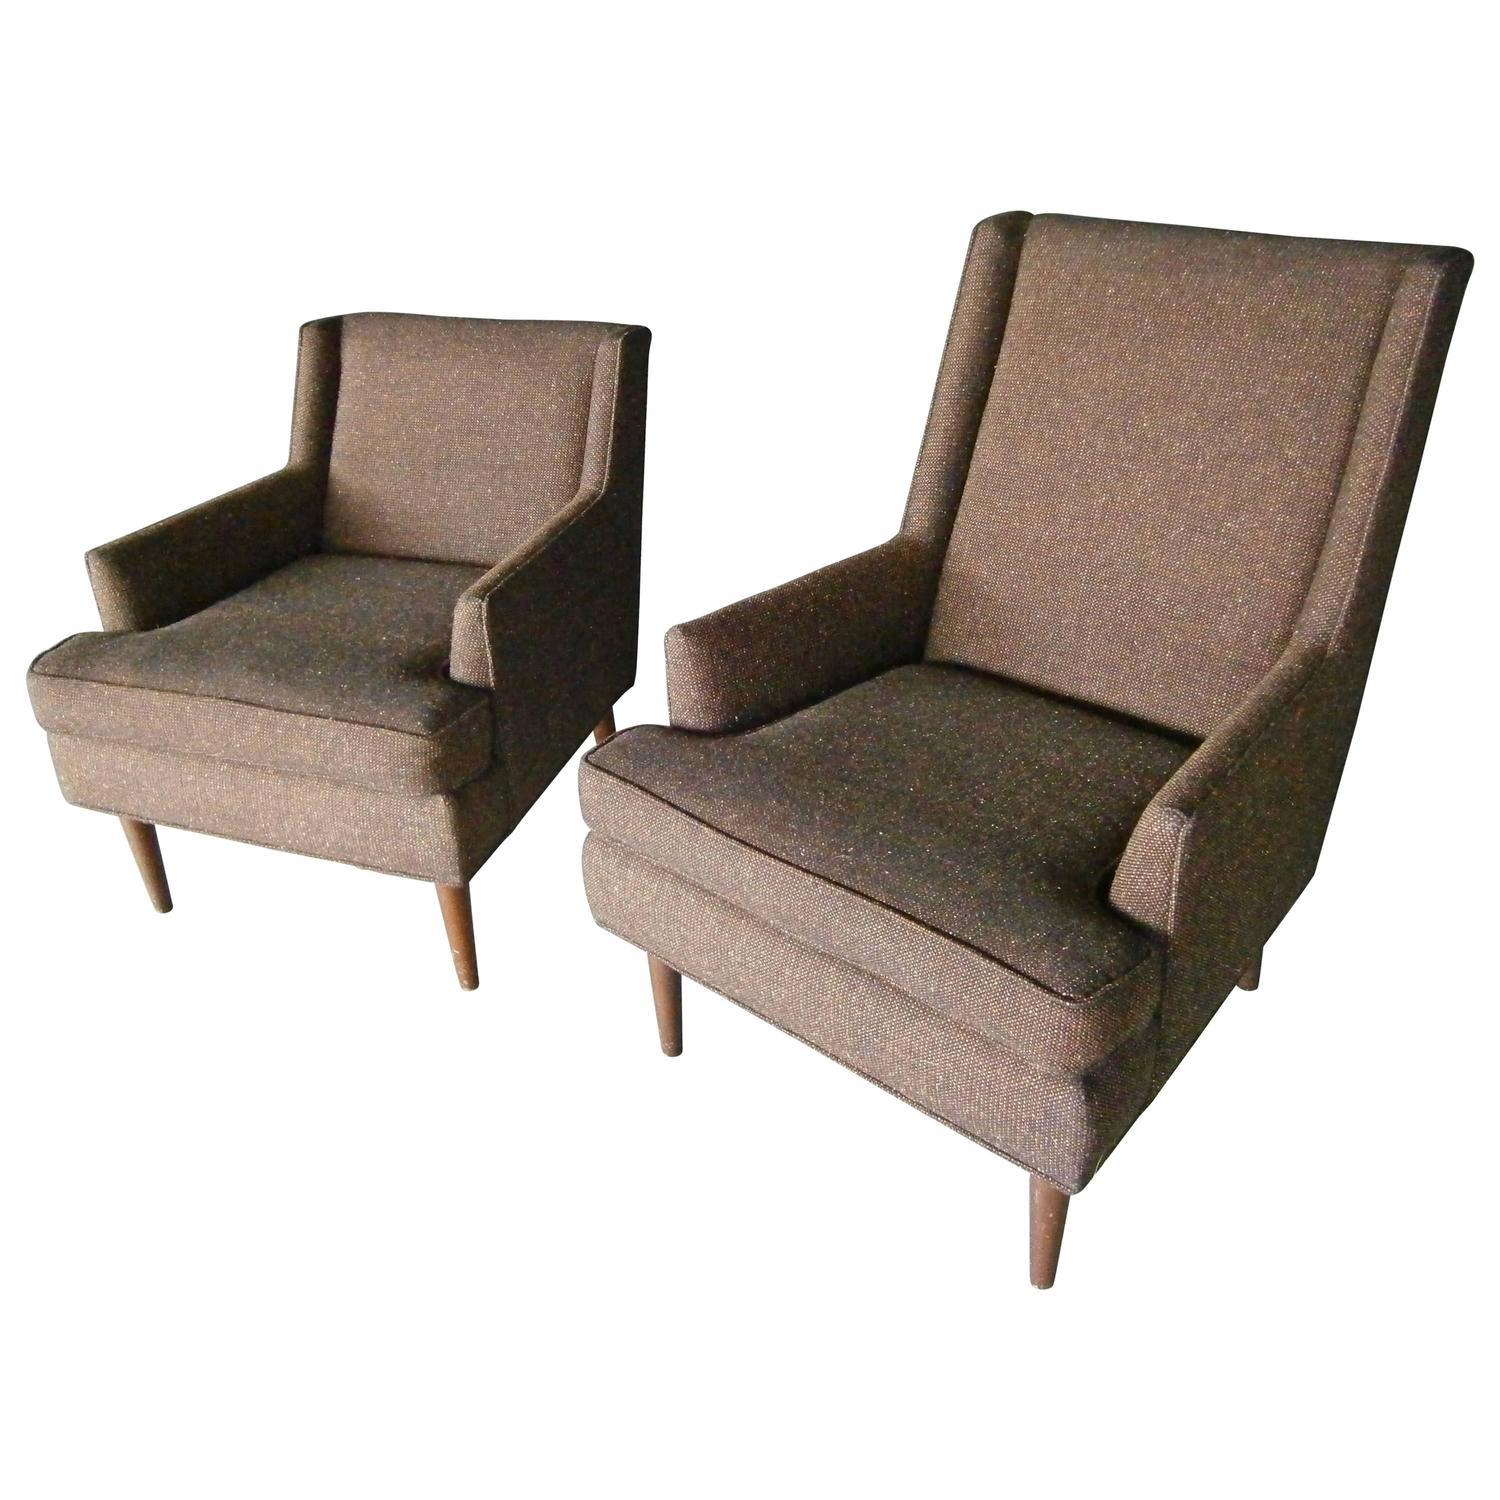 Set of two mid century modern fully upholstered his and for Mid century modern upholstered chair